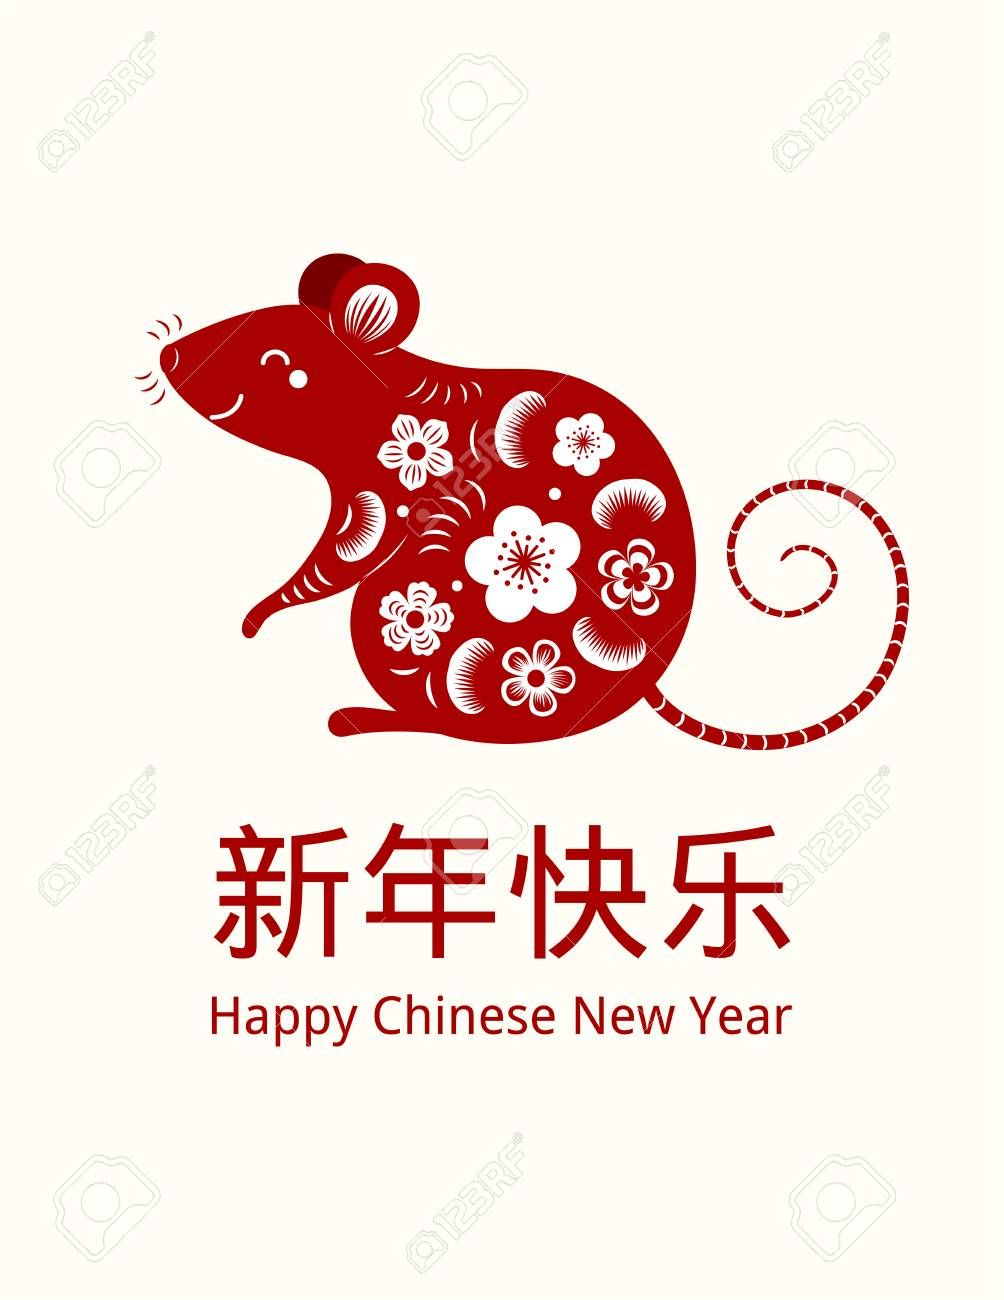 2020 new year greeting card with red rat silhouette